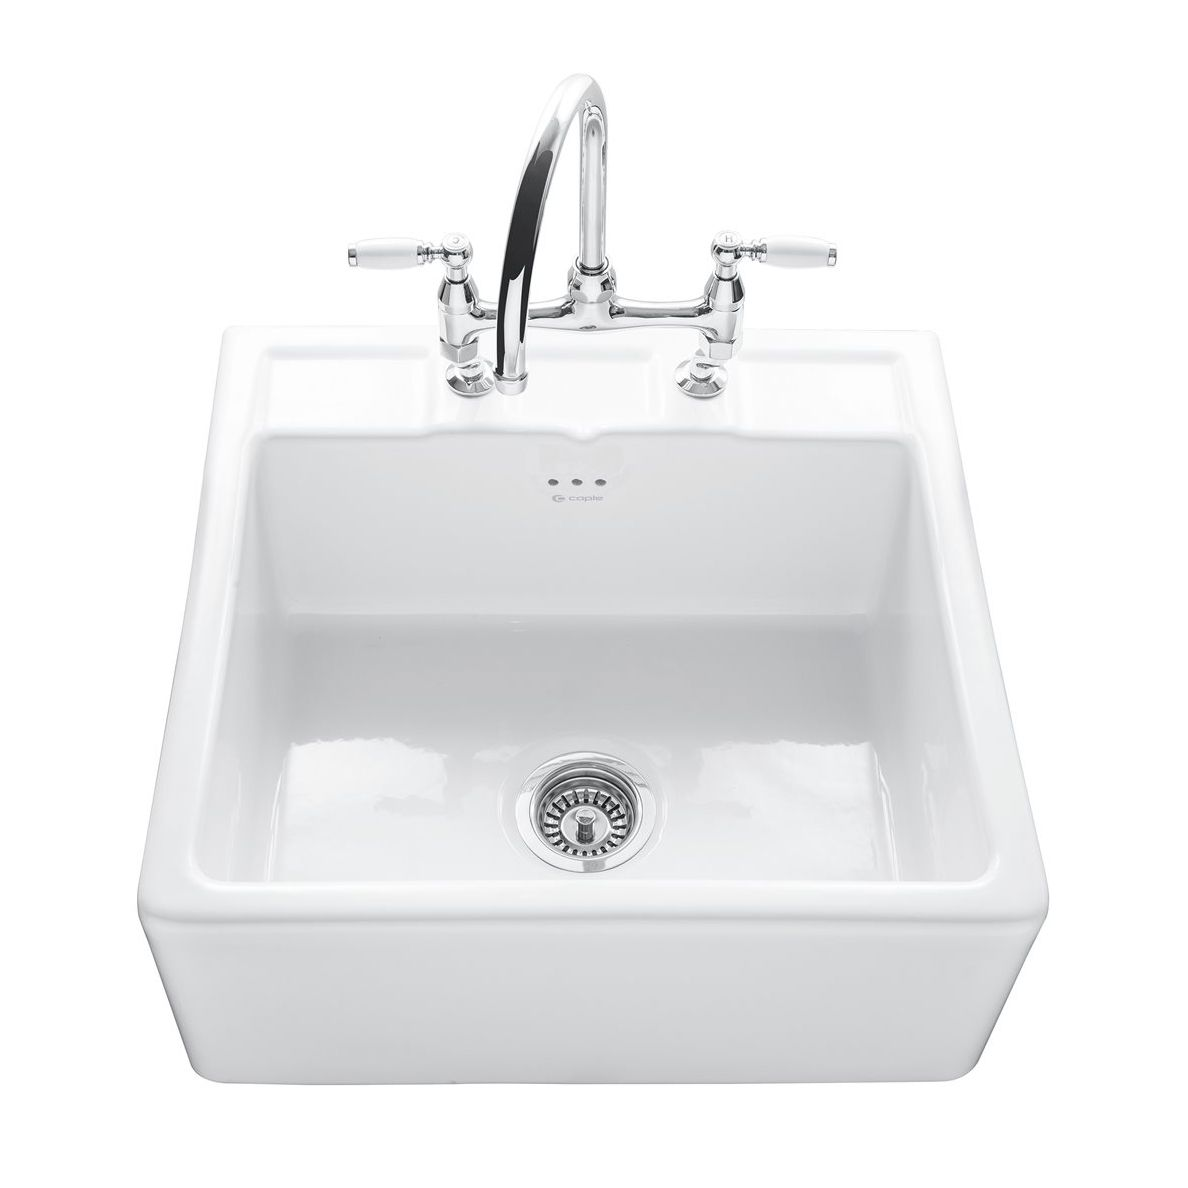 Caple BUTLER 600 Kitchen Sink with Tap Ledge - Sinks-Taps.com